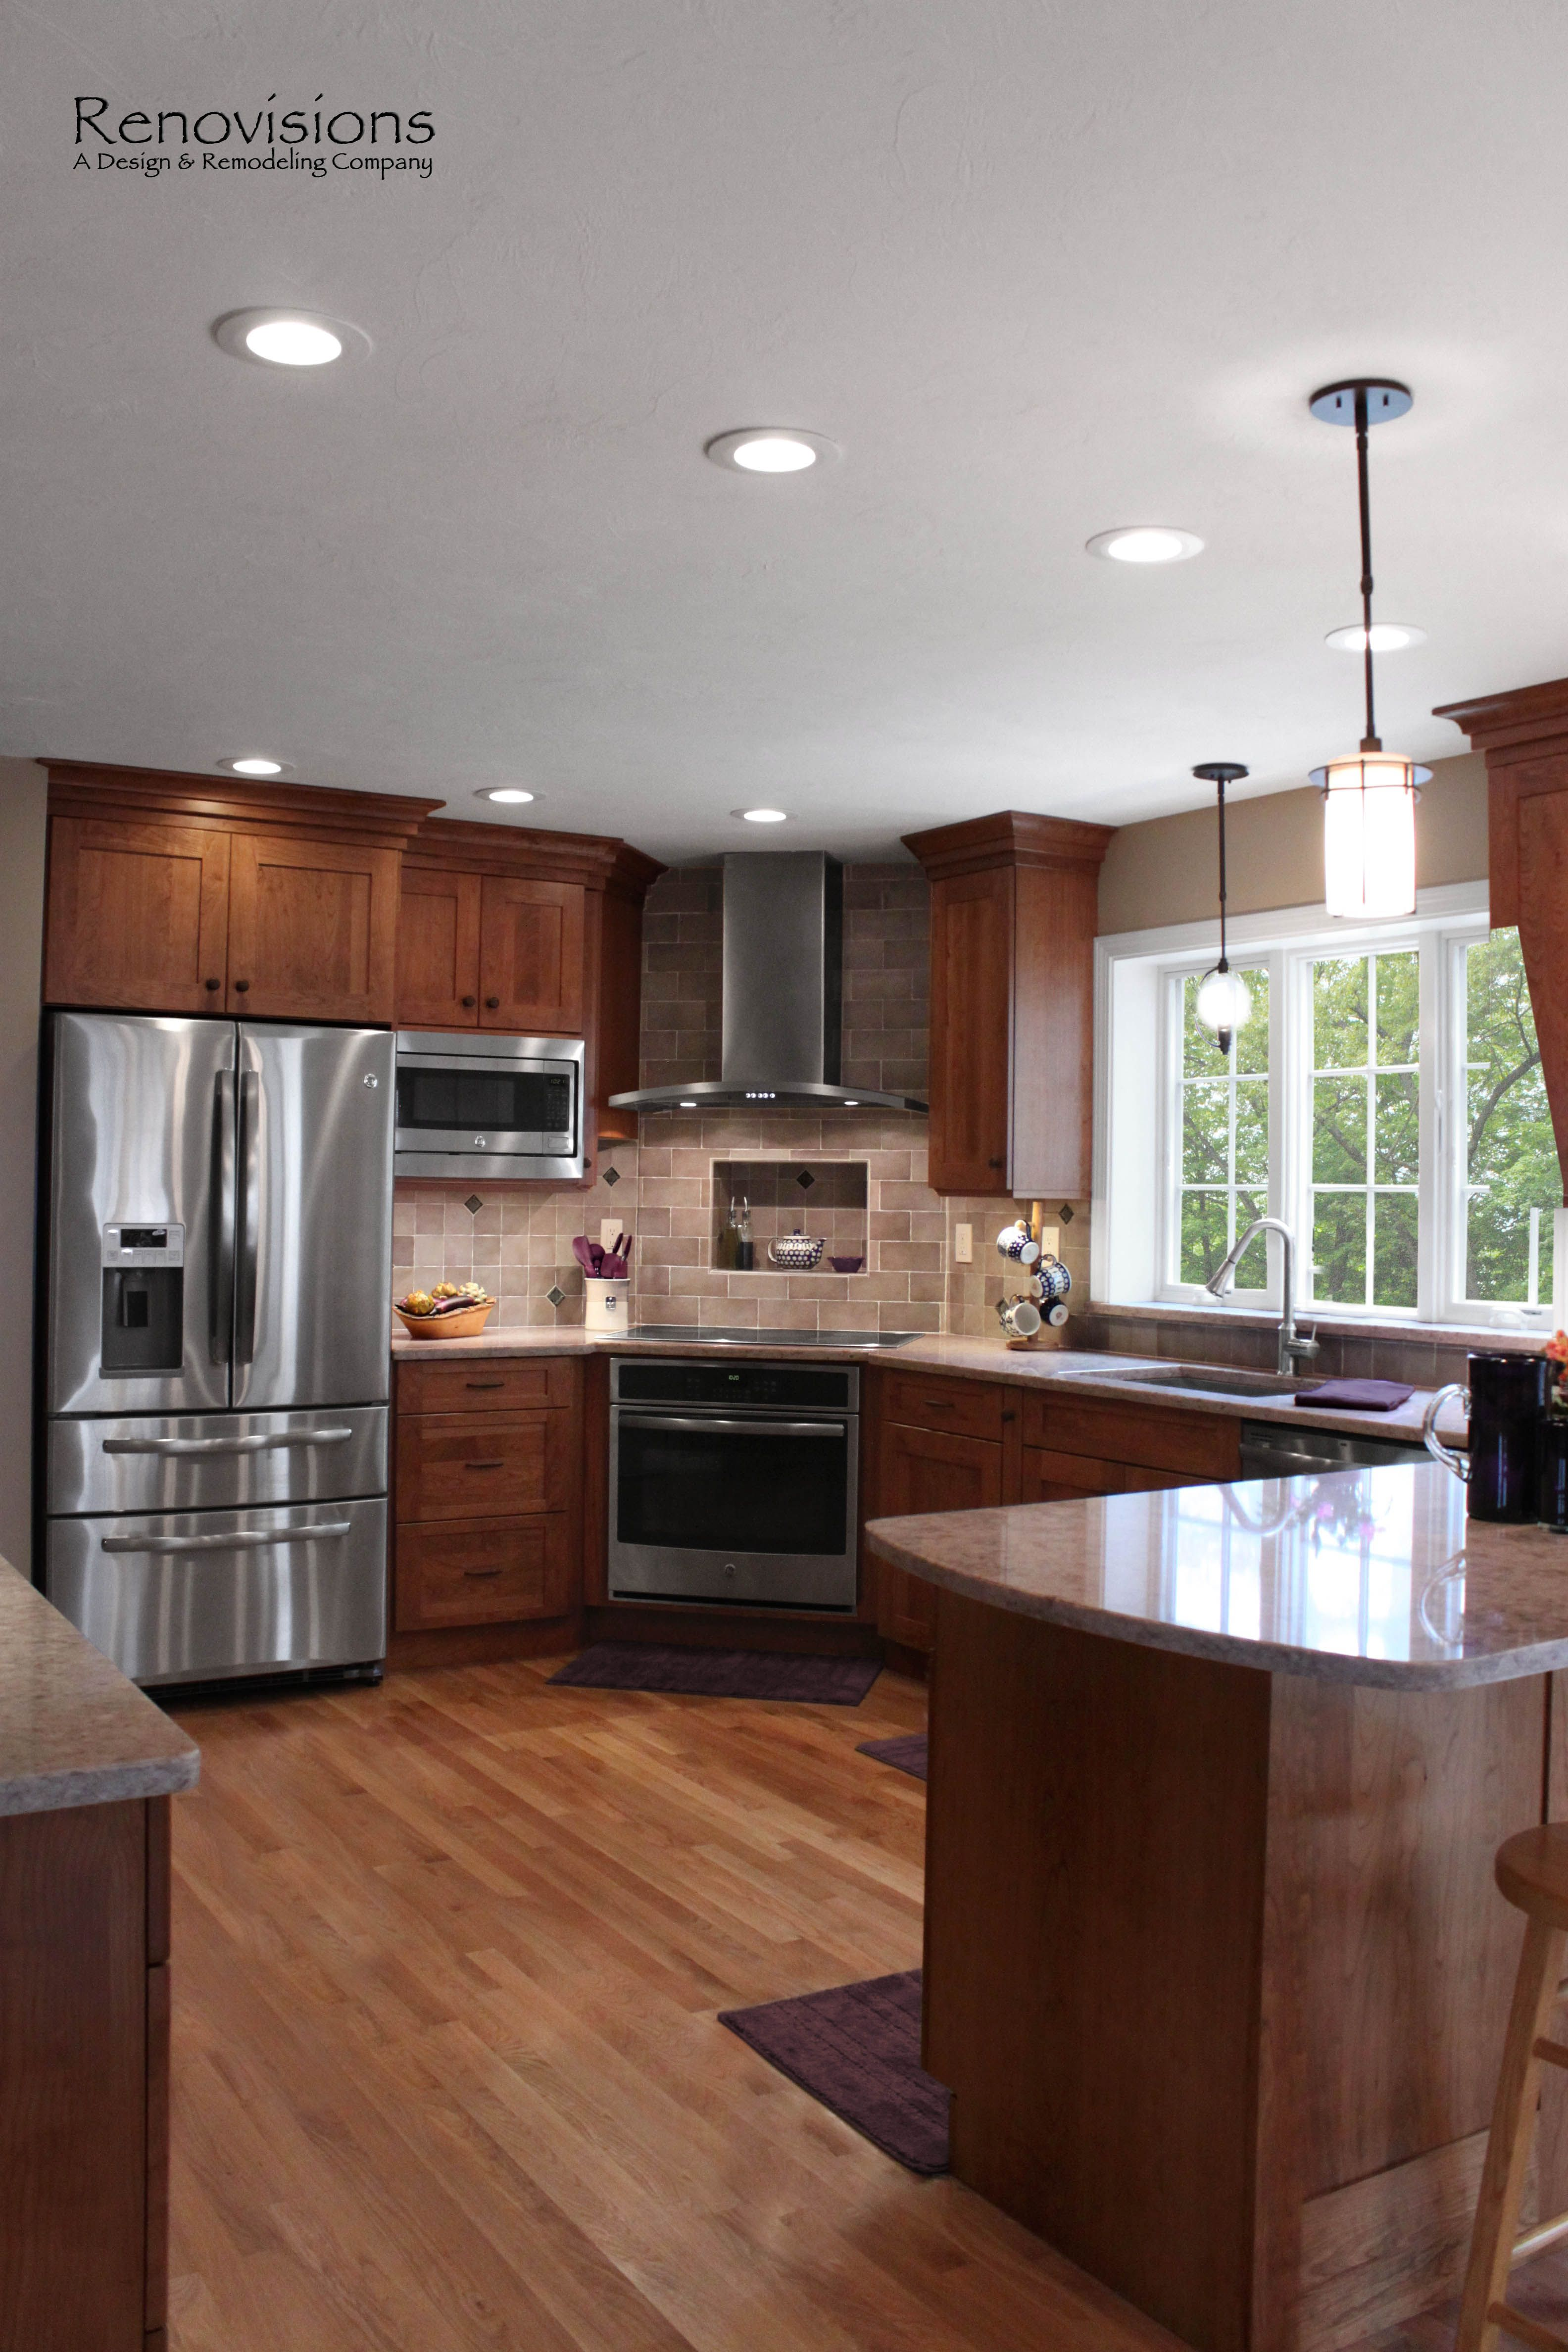 Renovating Kitchens Kitchen Remodel By Renovisions Induction Cooktop Stainless Steel